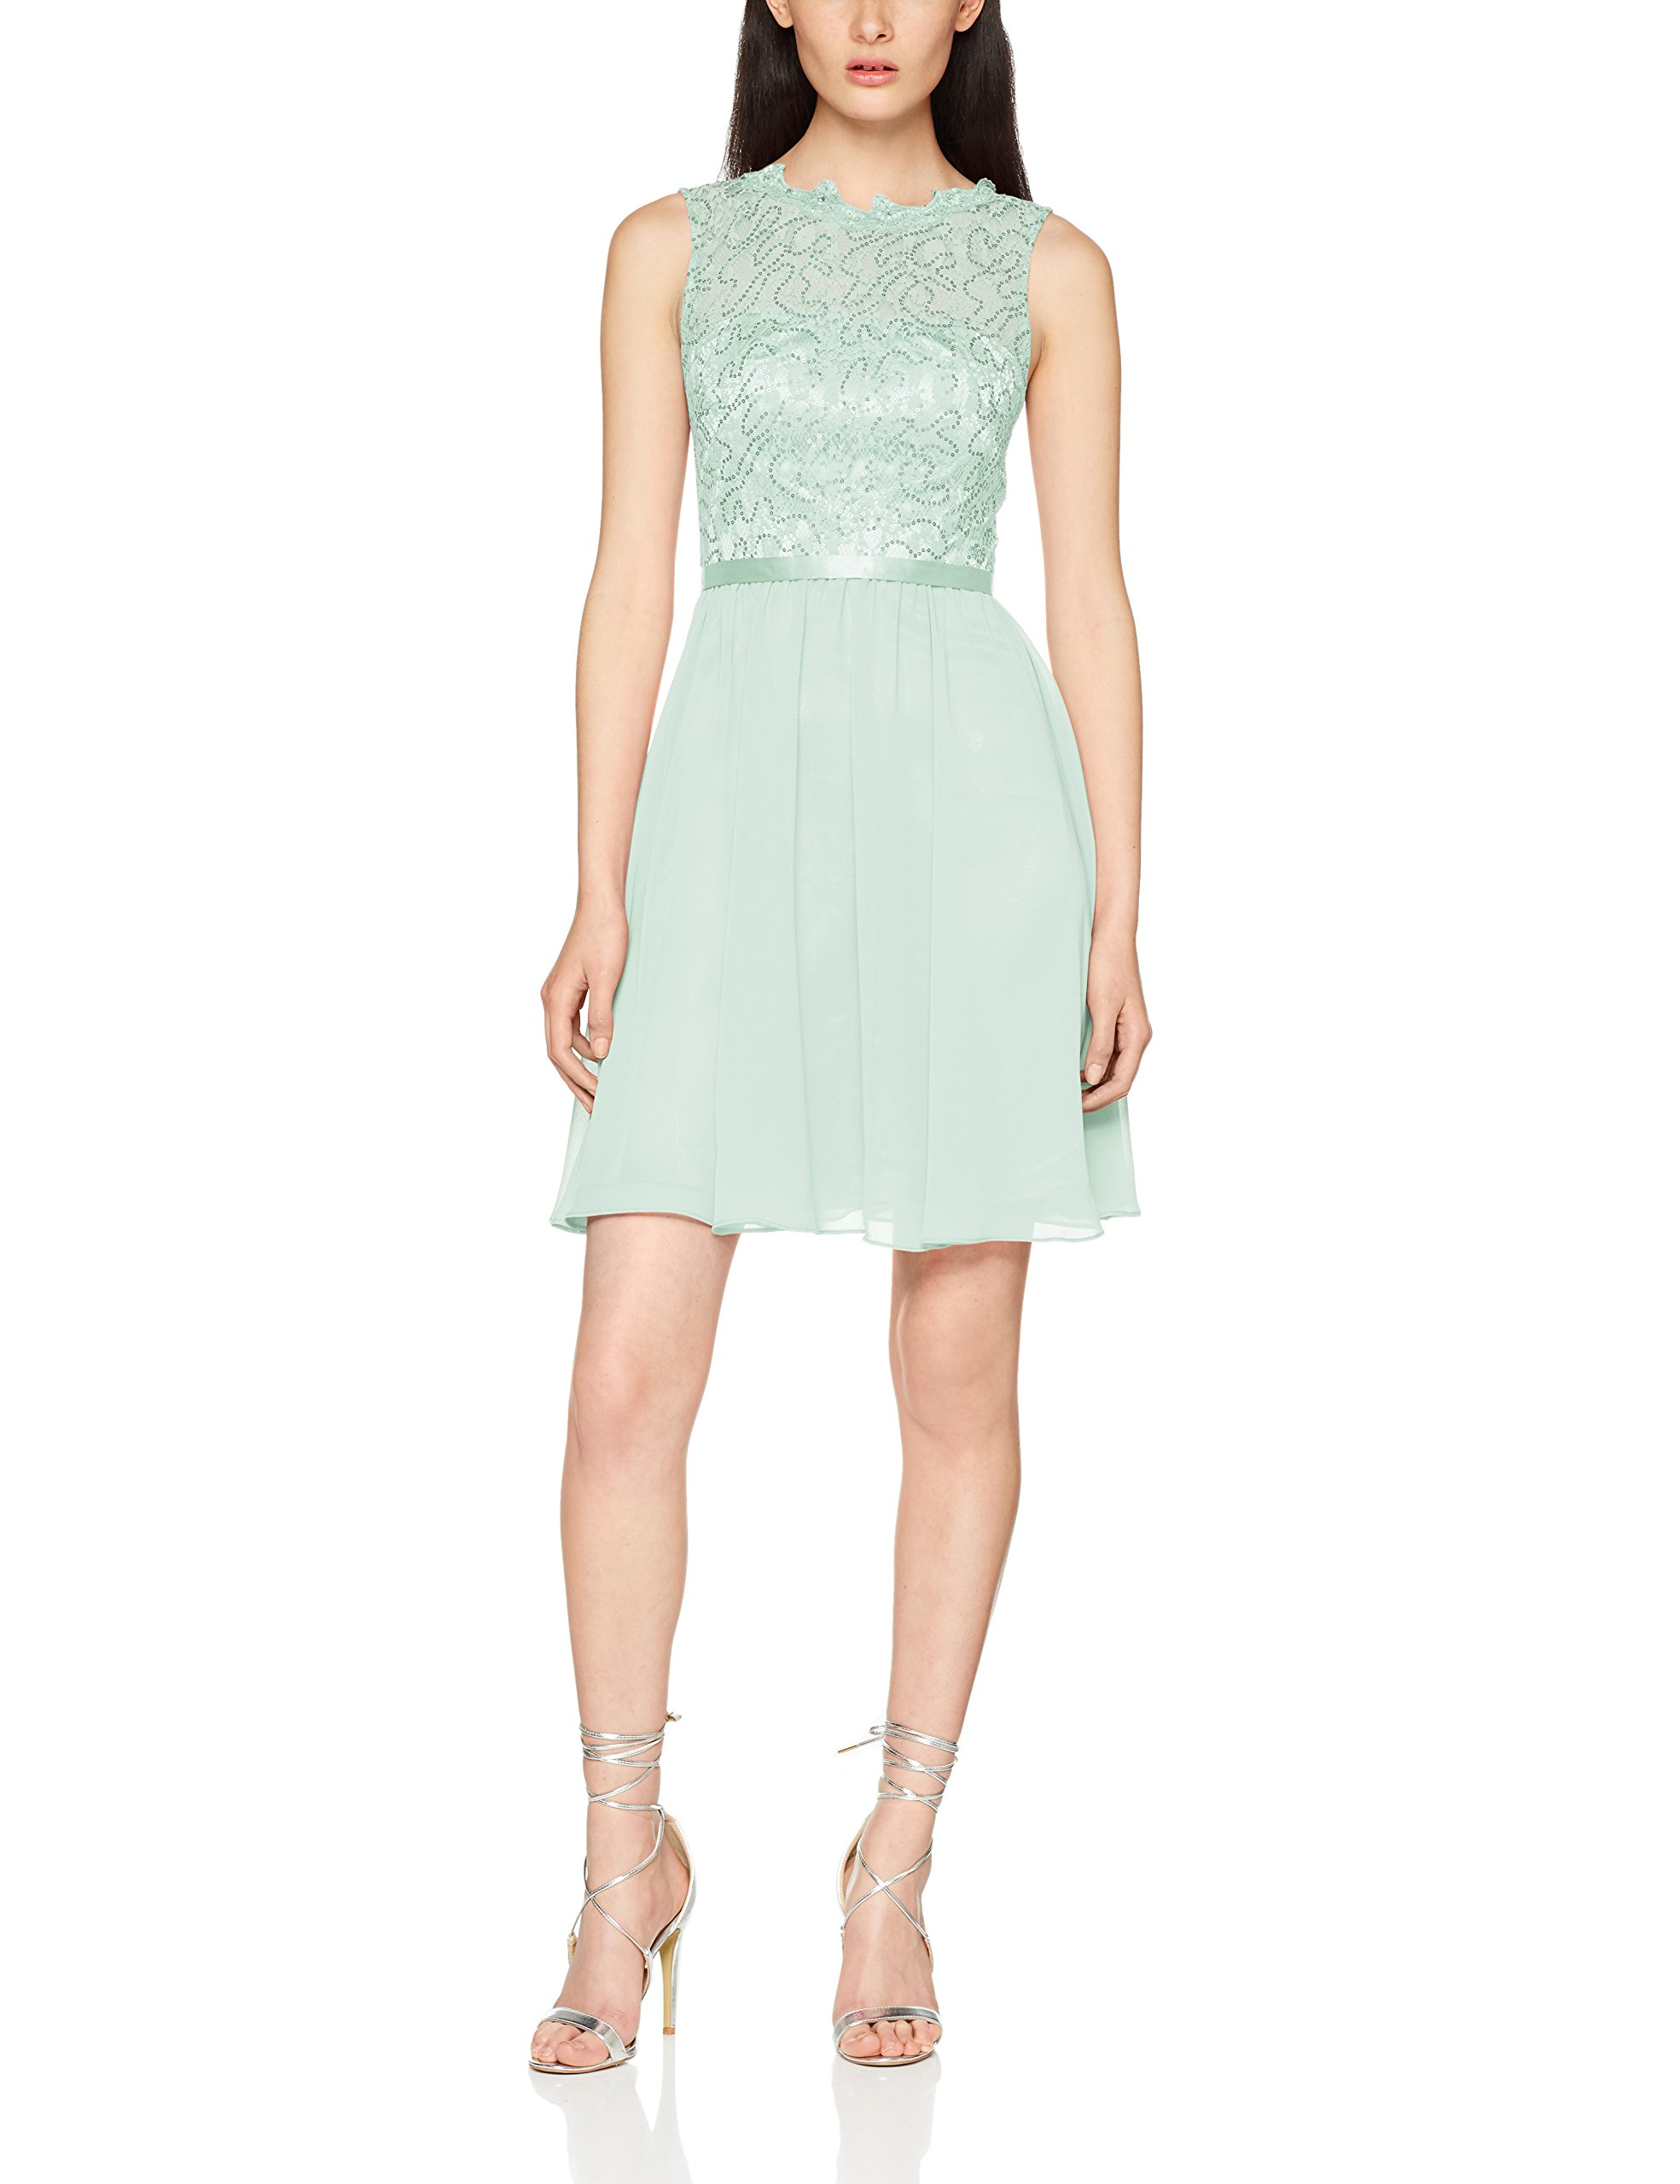 Laona Dress RobeGrünchalk 9048Uk Cocktail Green Femme 6 SzVMGLpqU